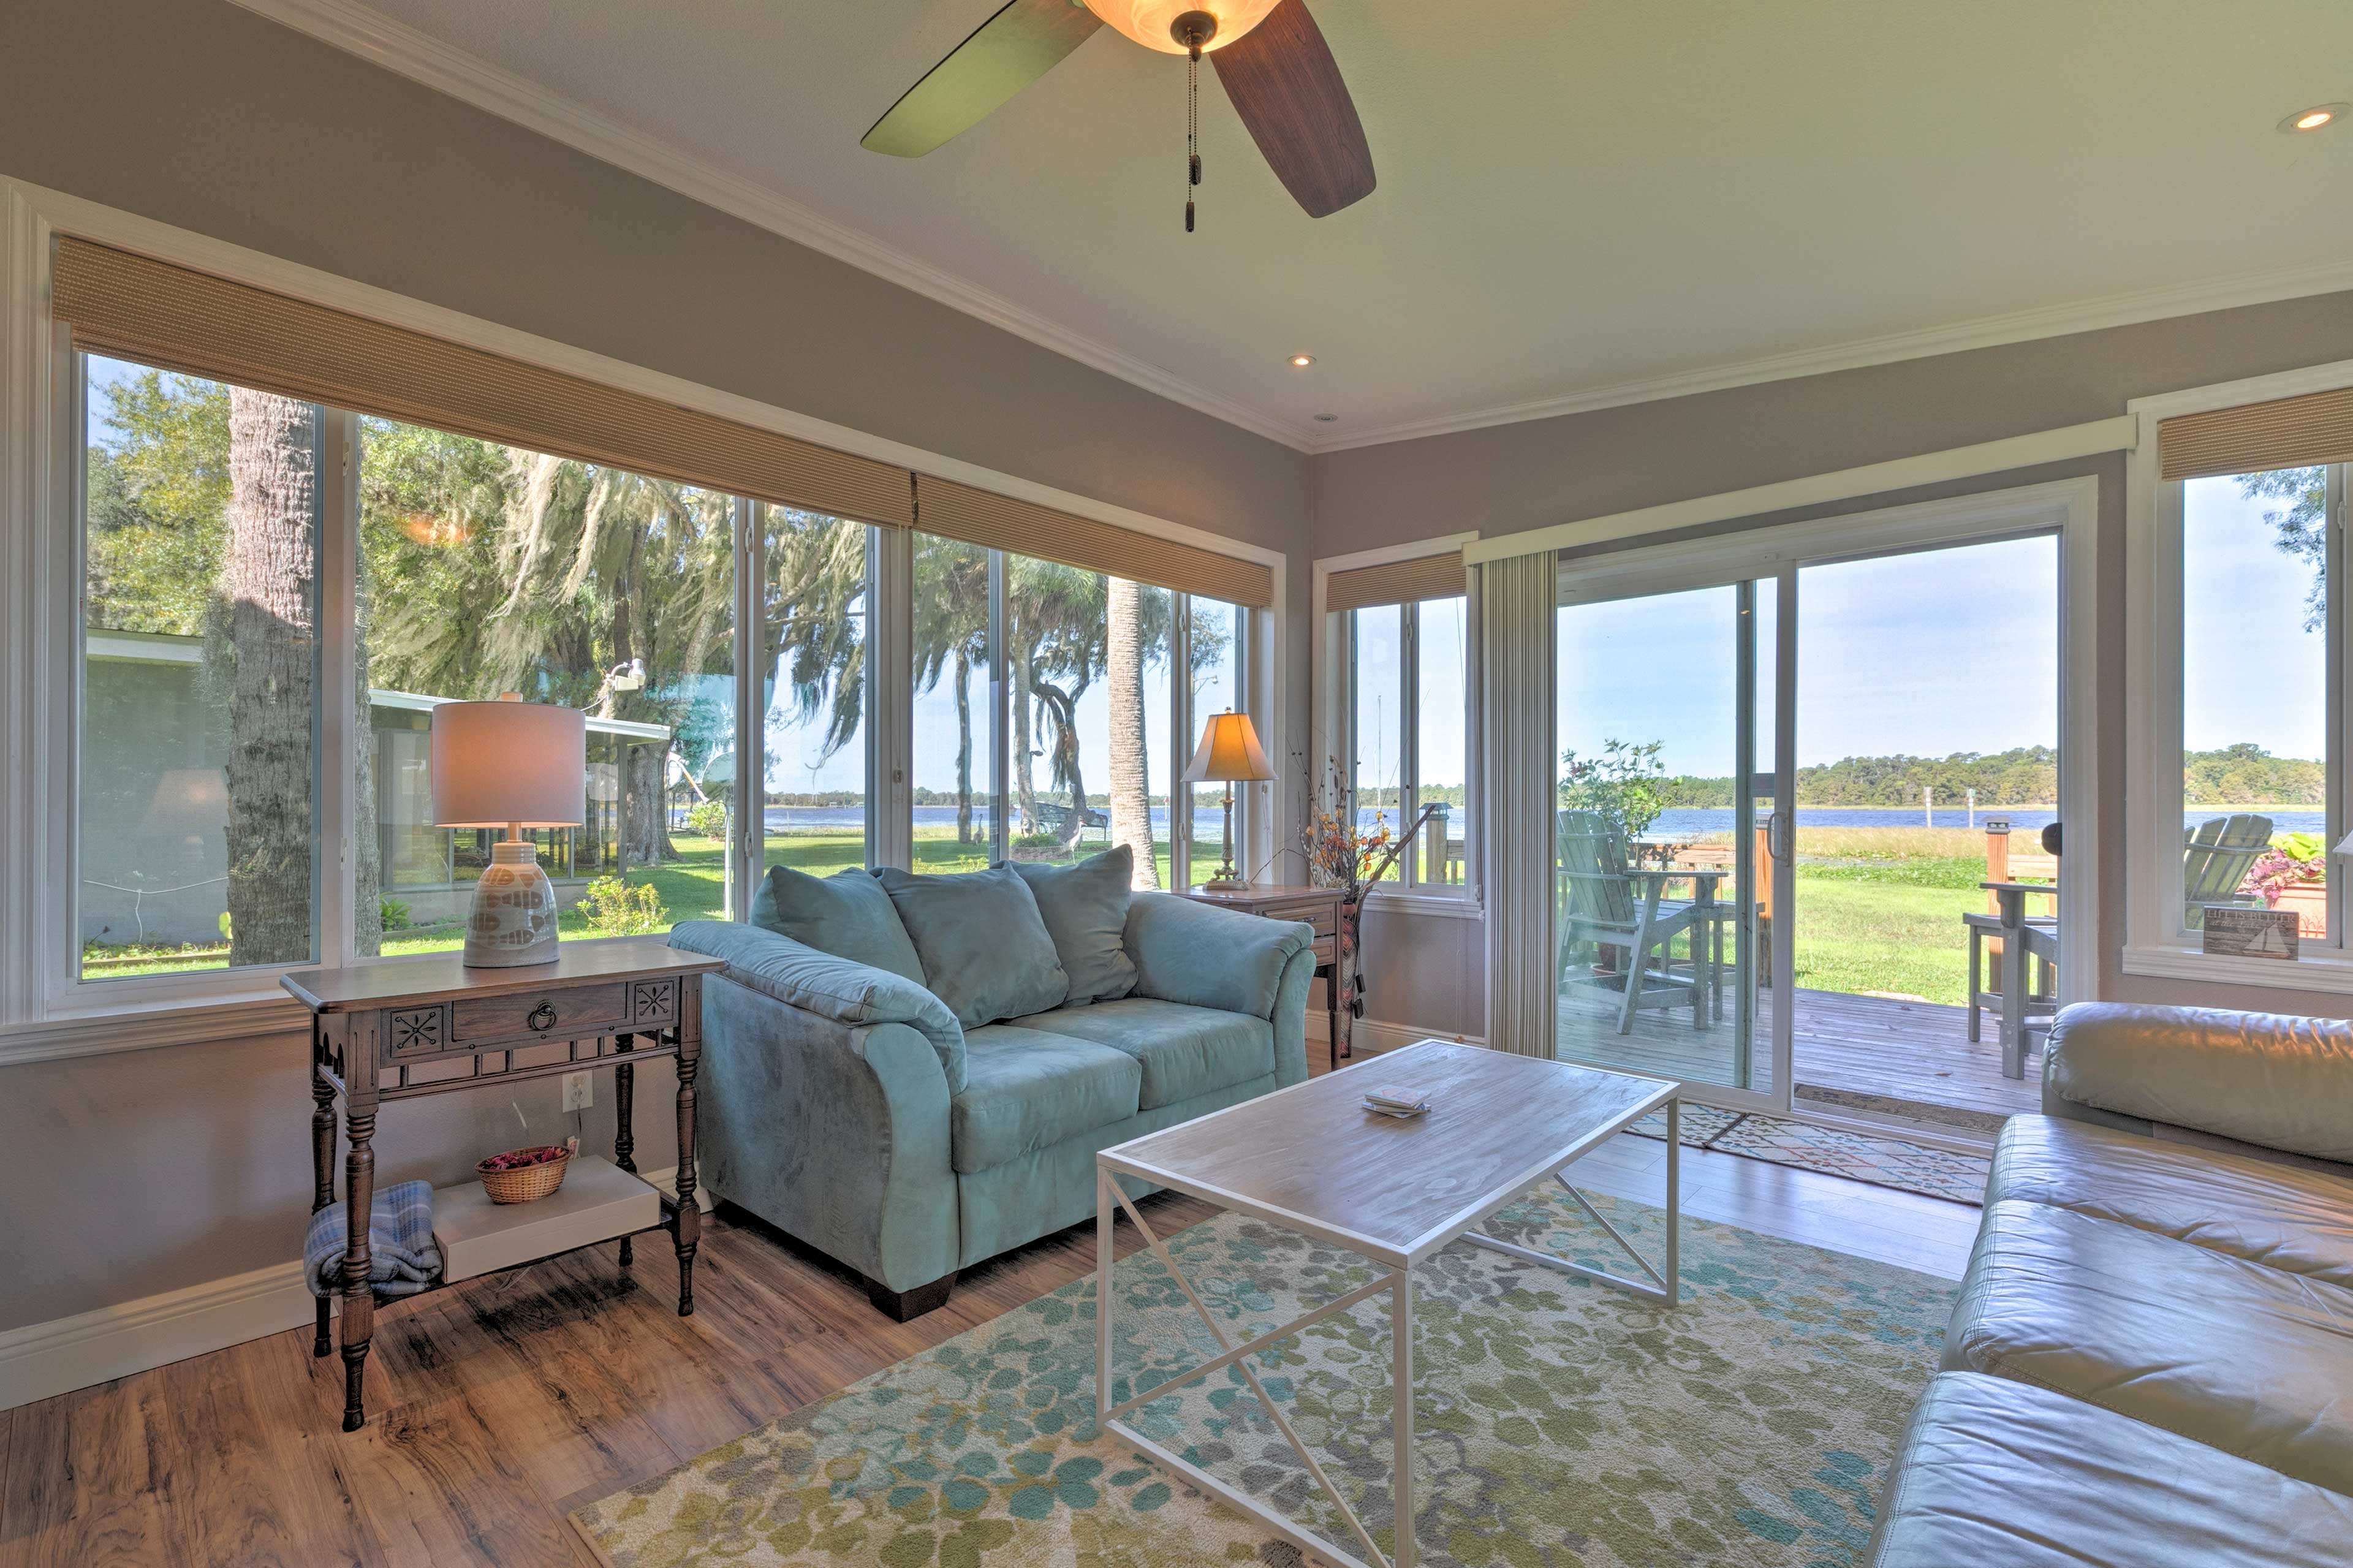 Admire 180-degree water views from the sunroom as you take it easy!